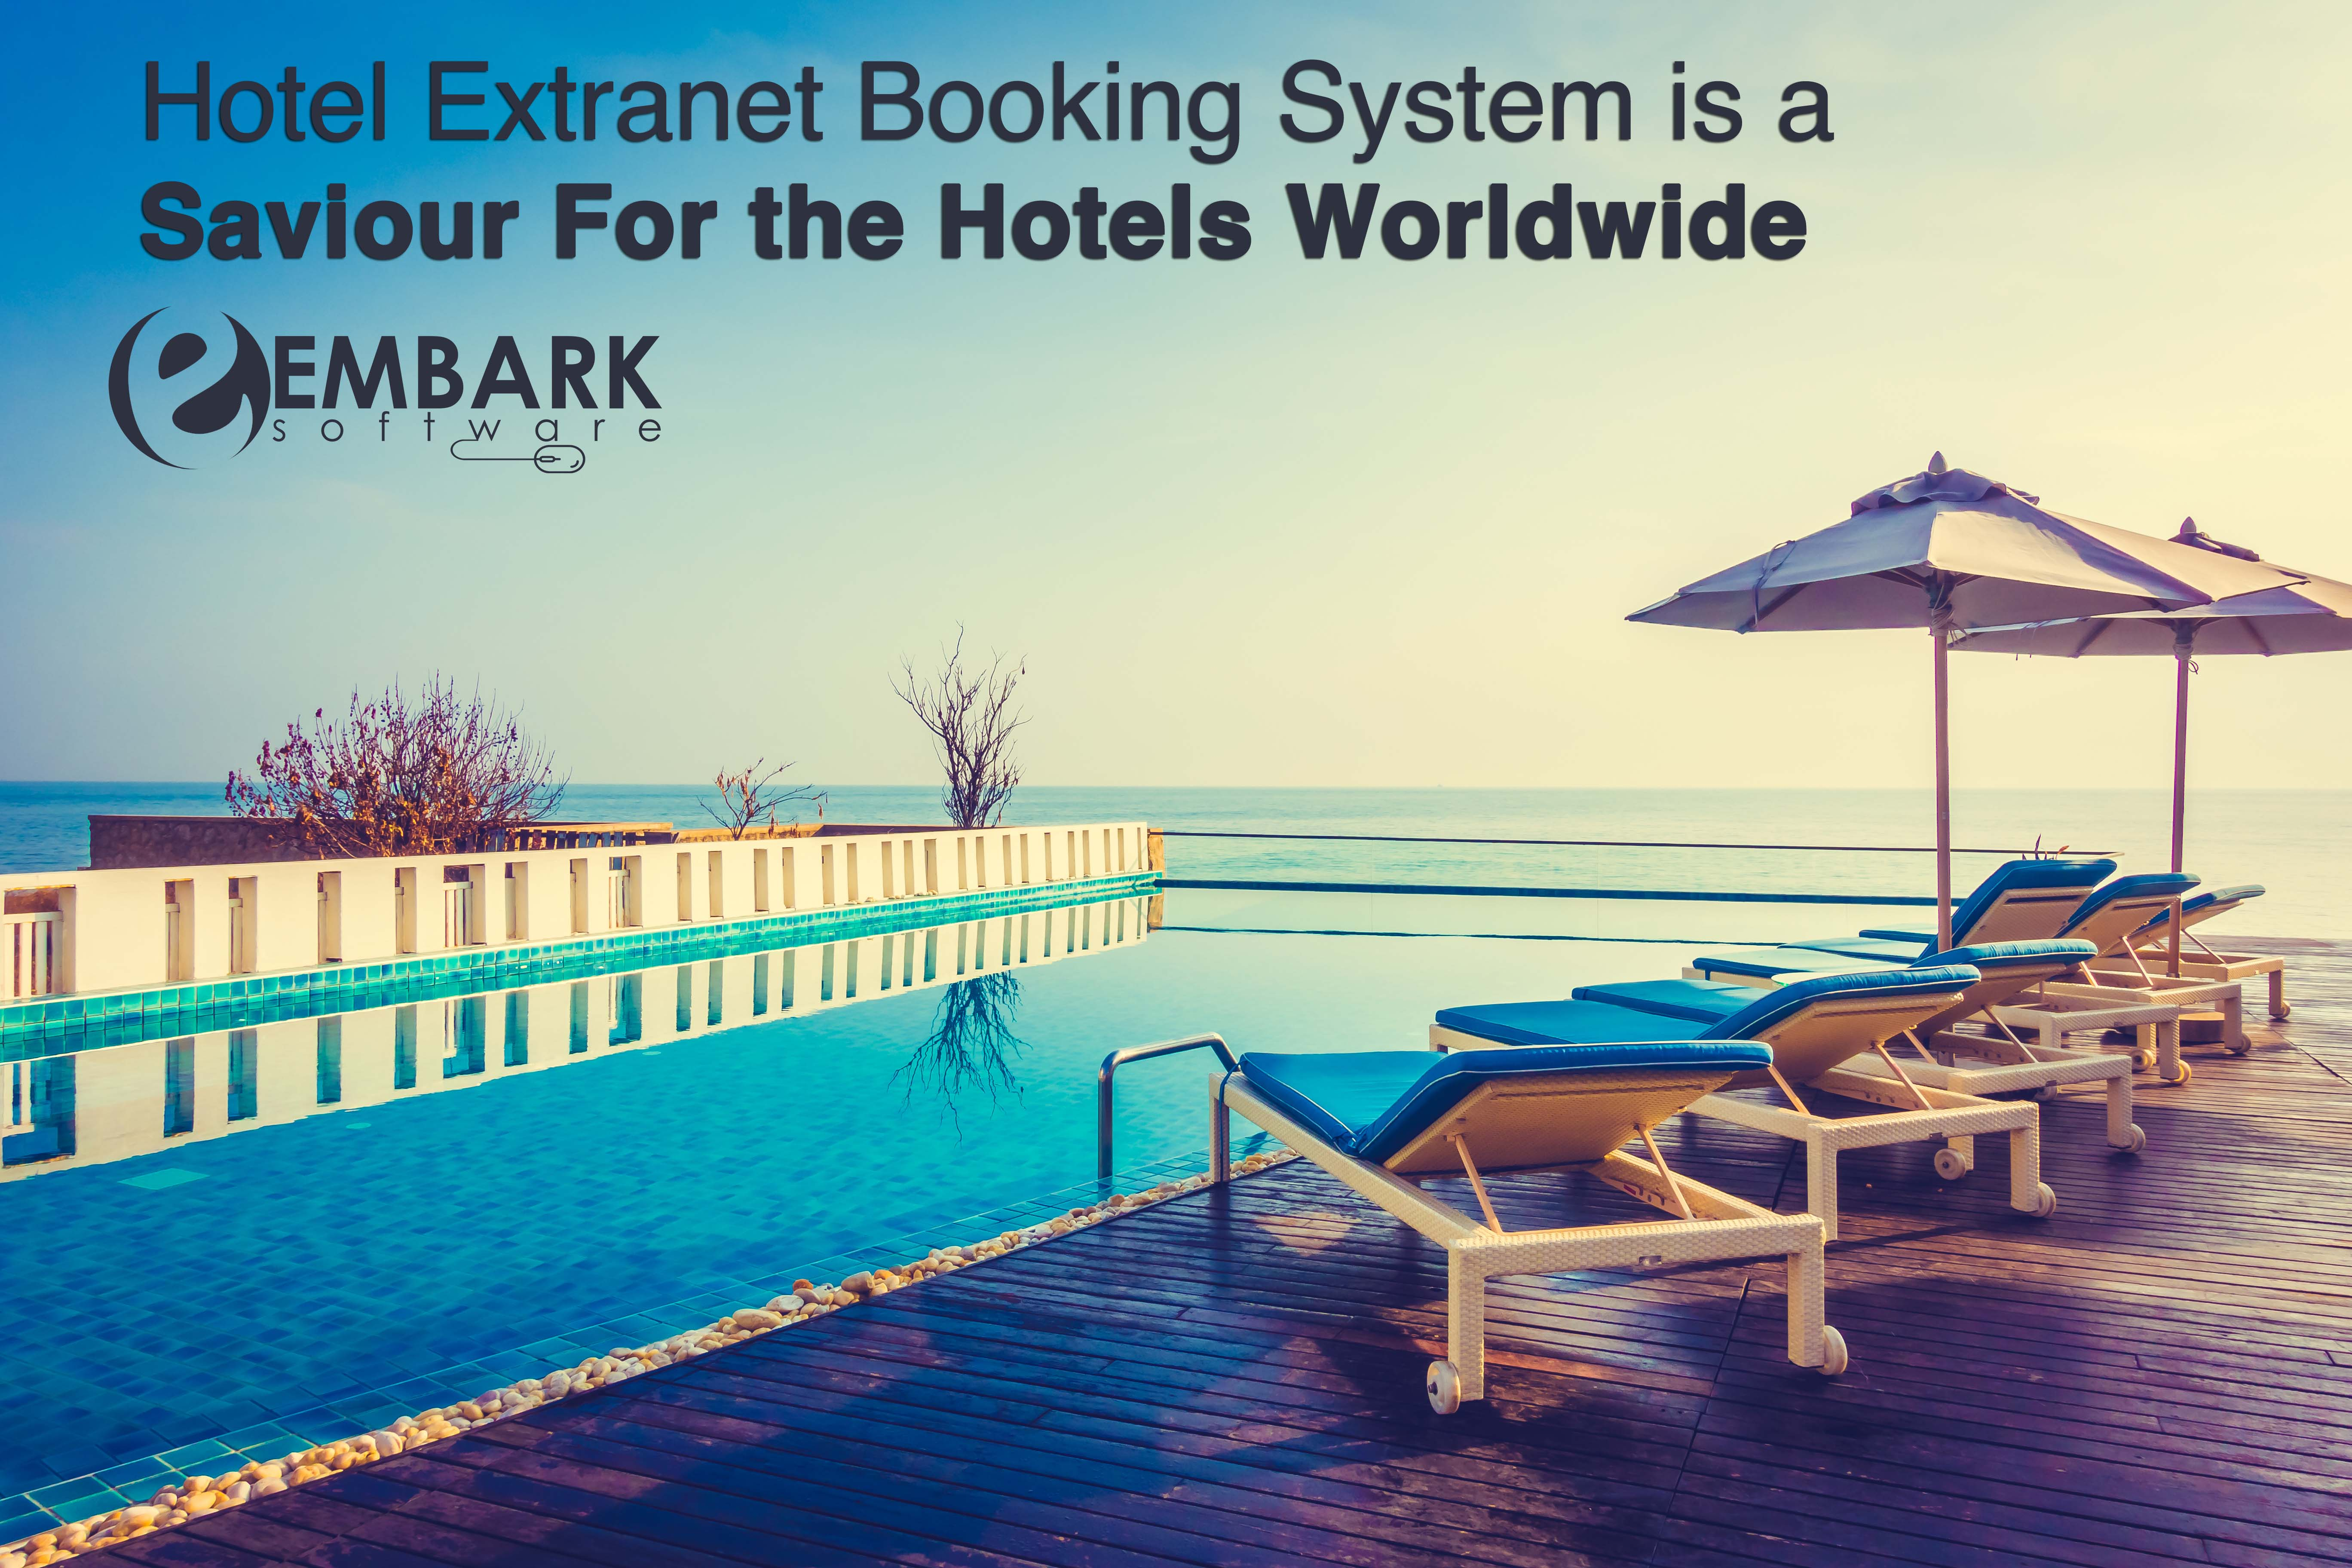 Hotel Extranet Booking System is a Saviour For the Hotels Worldwide